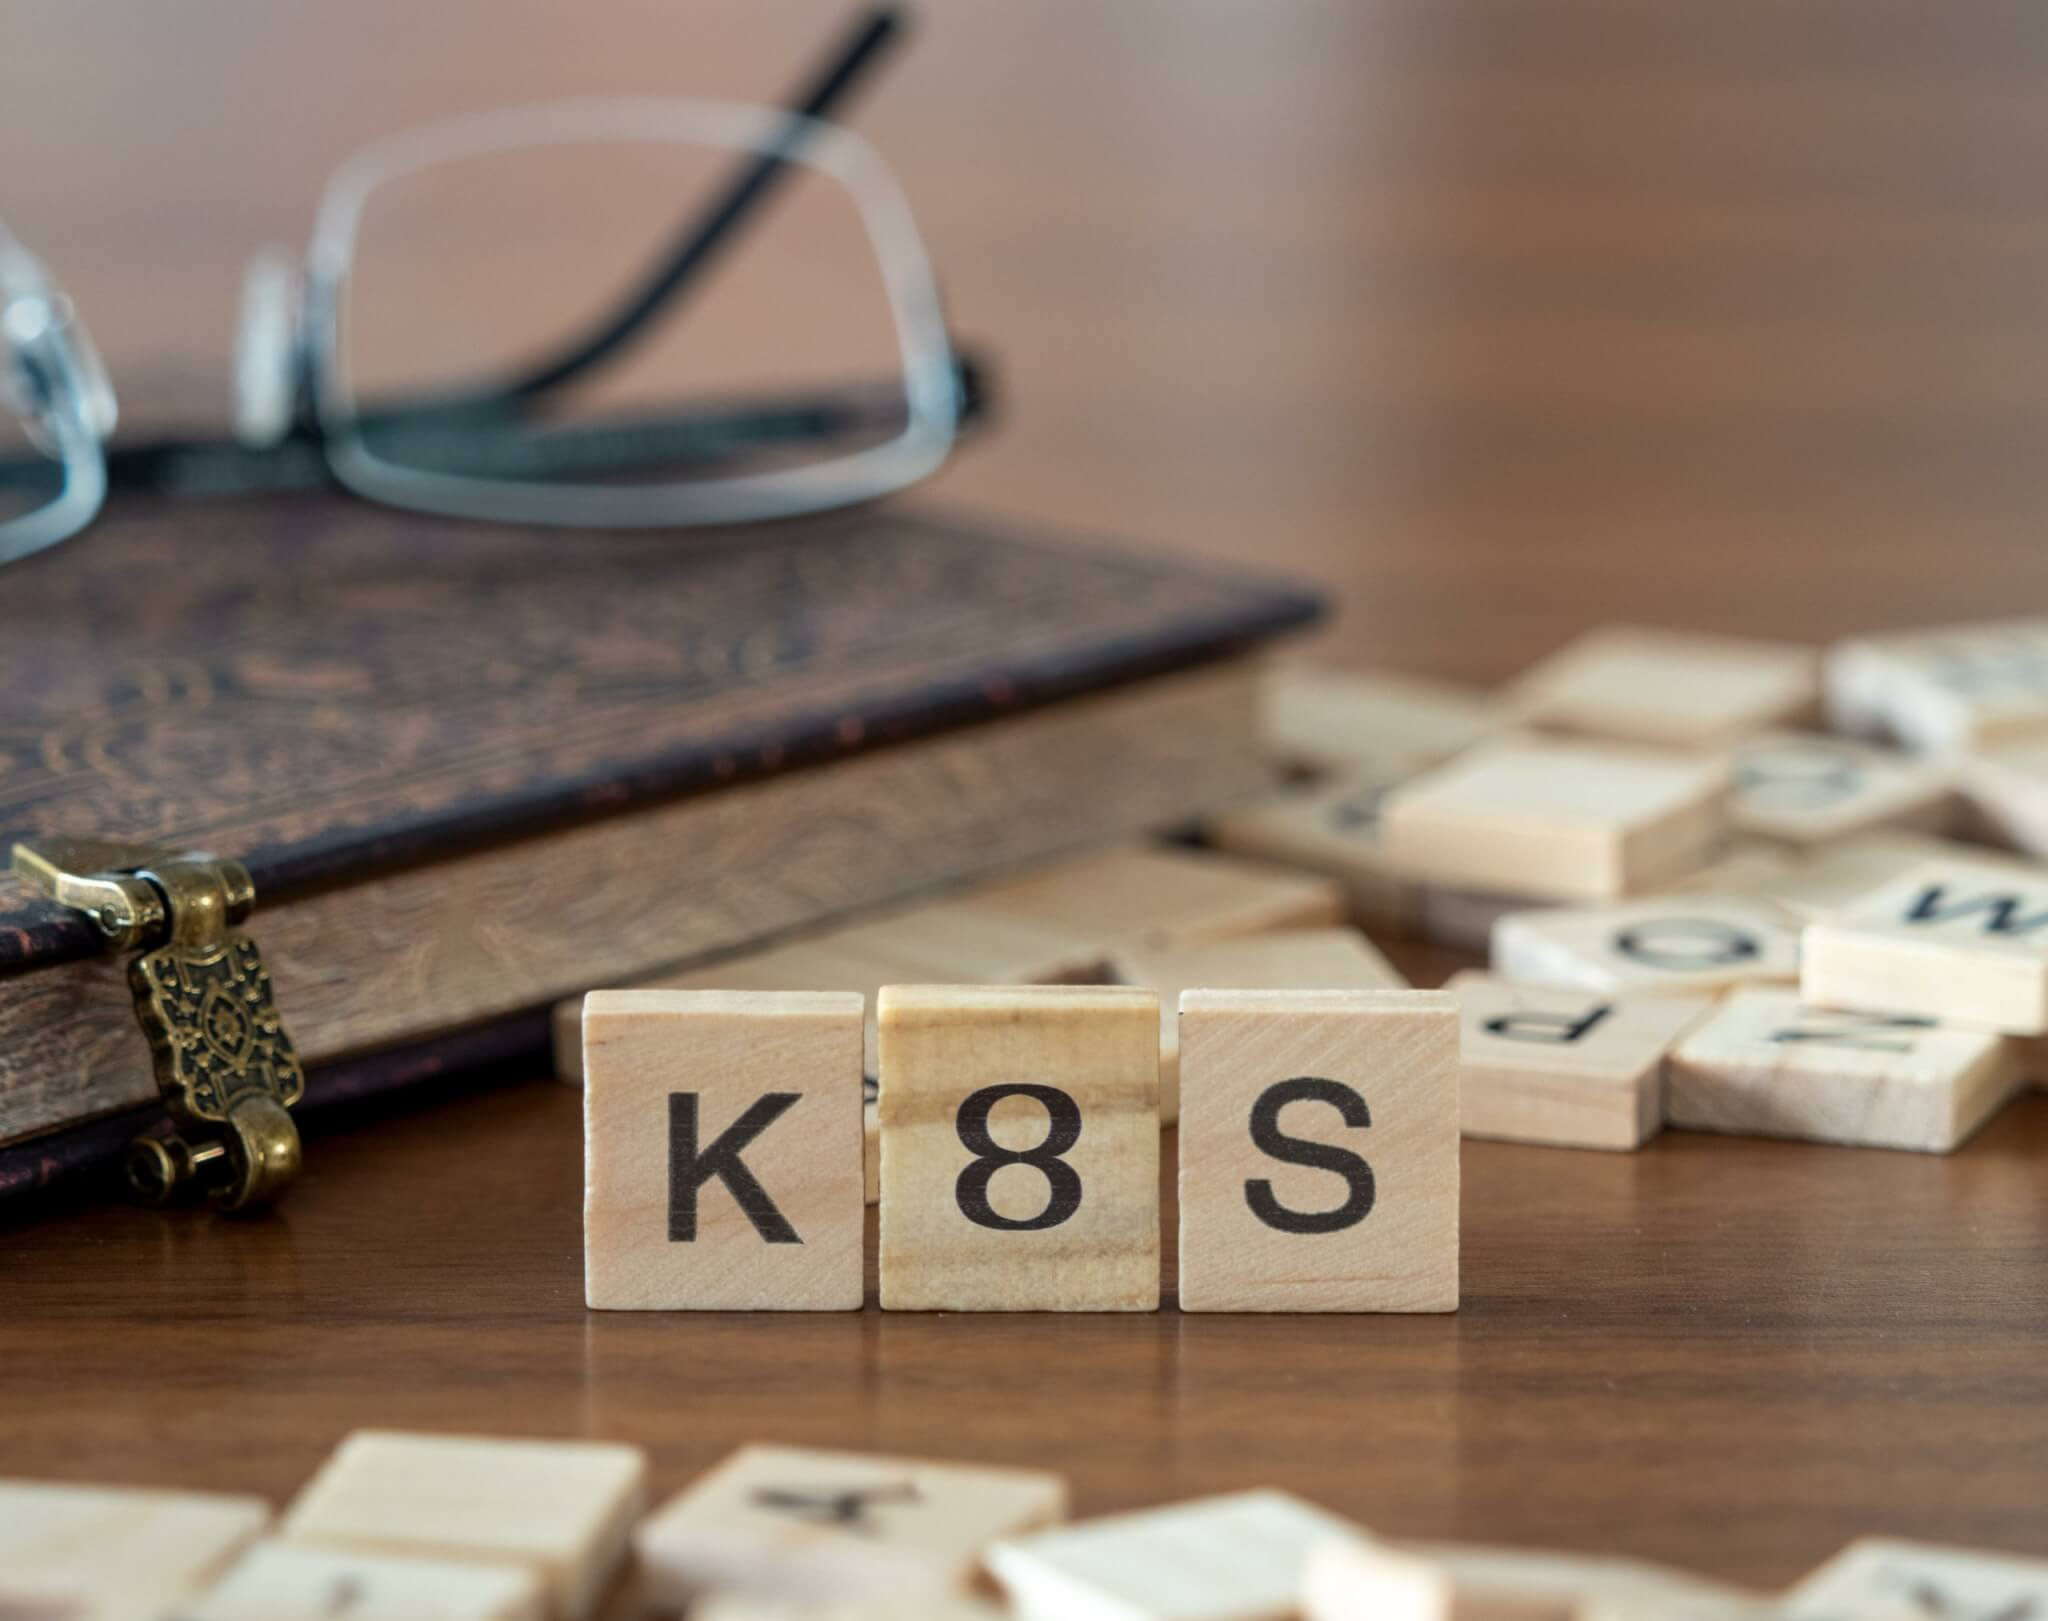 The acronym k8s for kubernetes  concept represented by wooden letter tiles